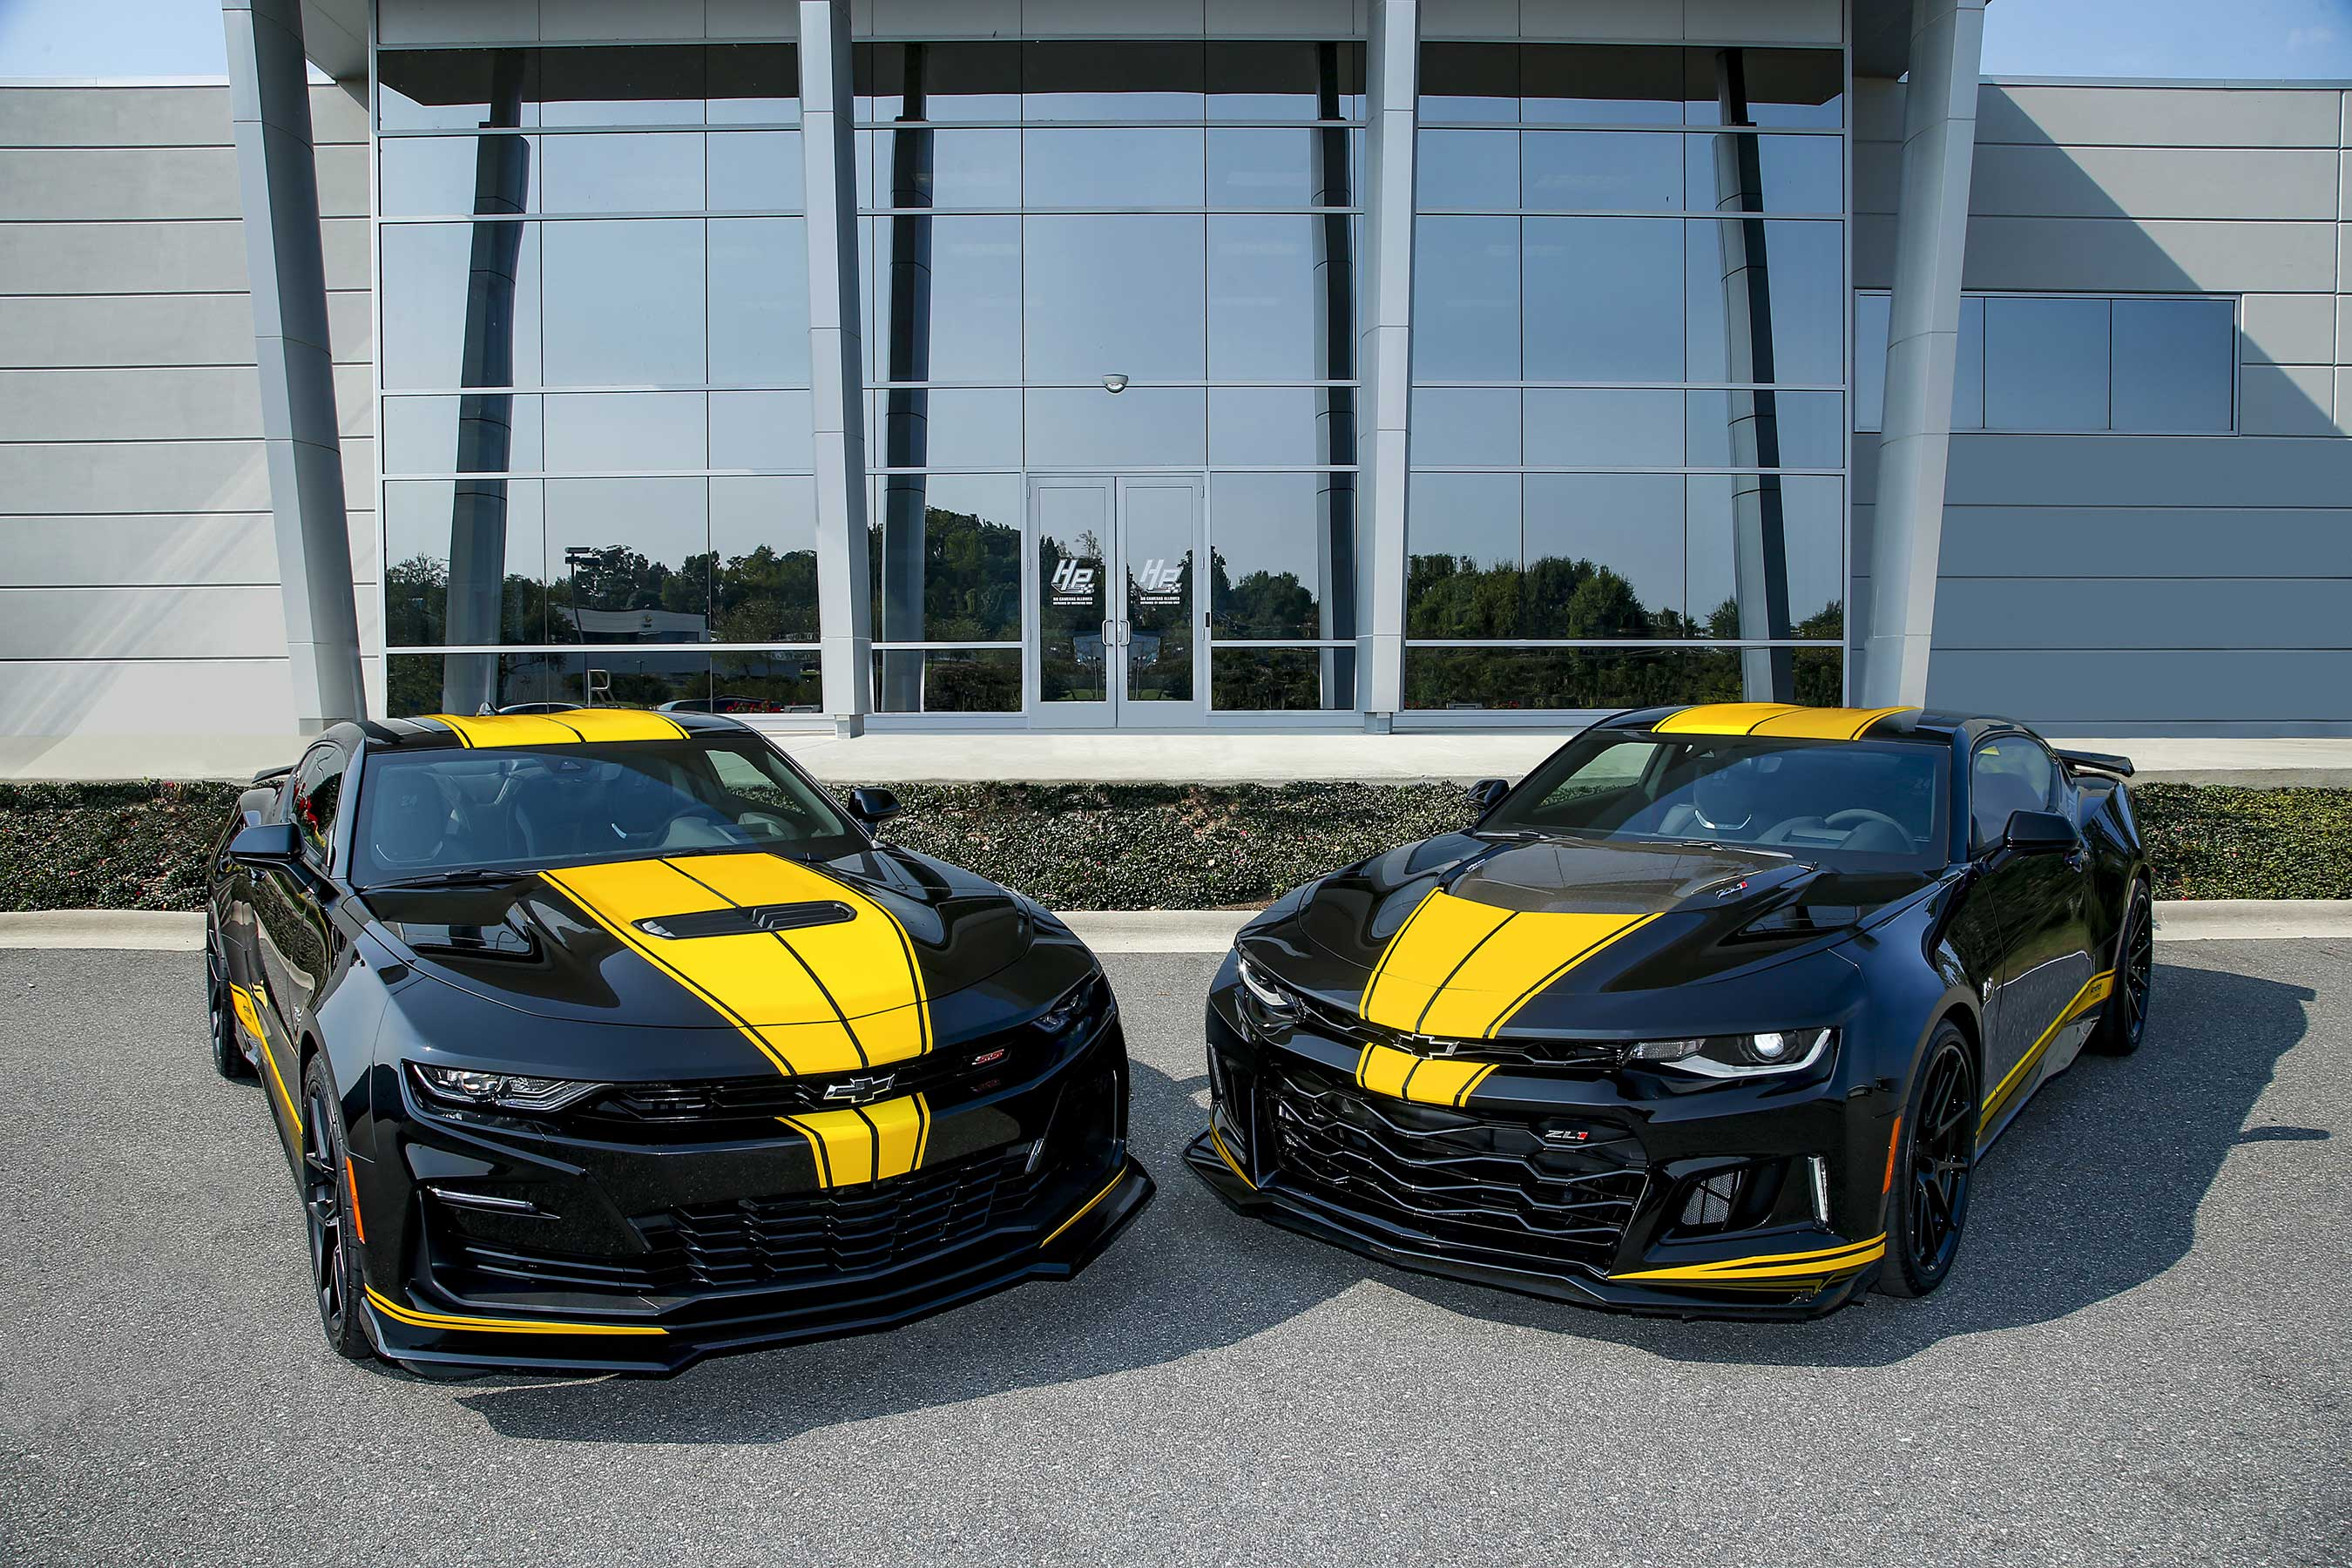 Hertz Full Size Car List 2020.2020 Camaro With Up To 750 Hp To Be Available For Rent From